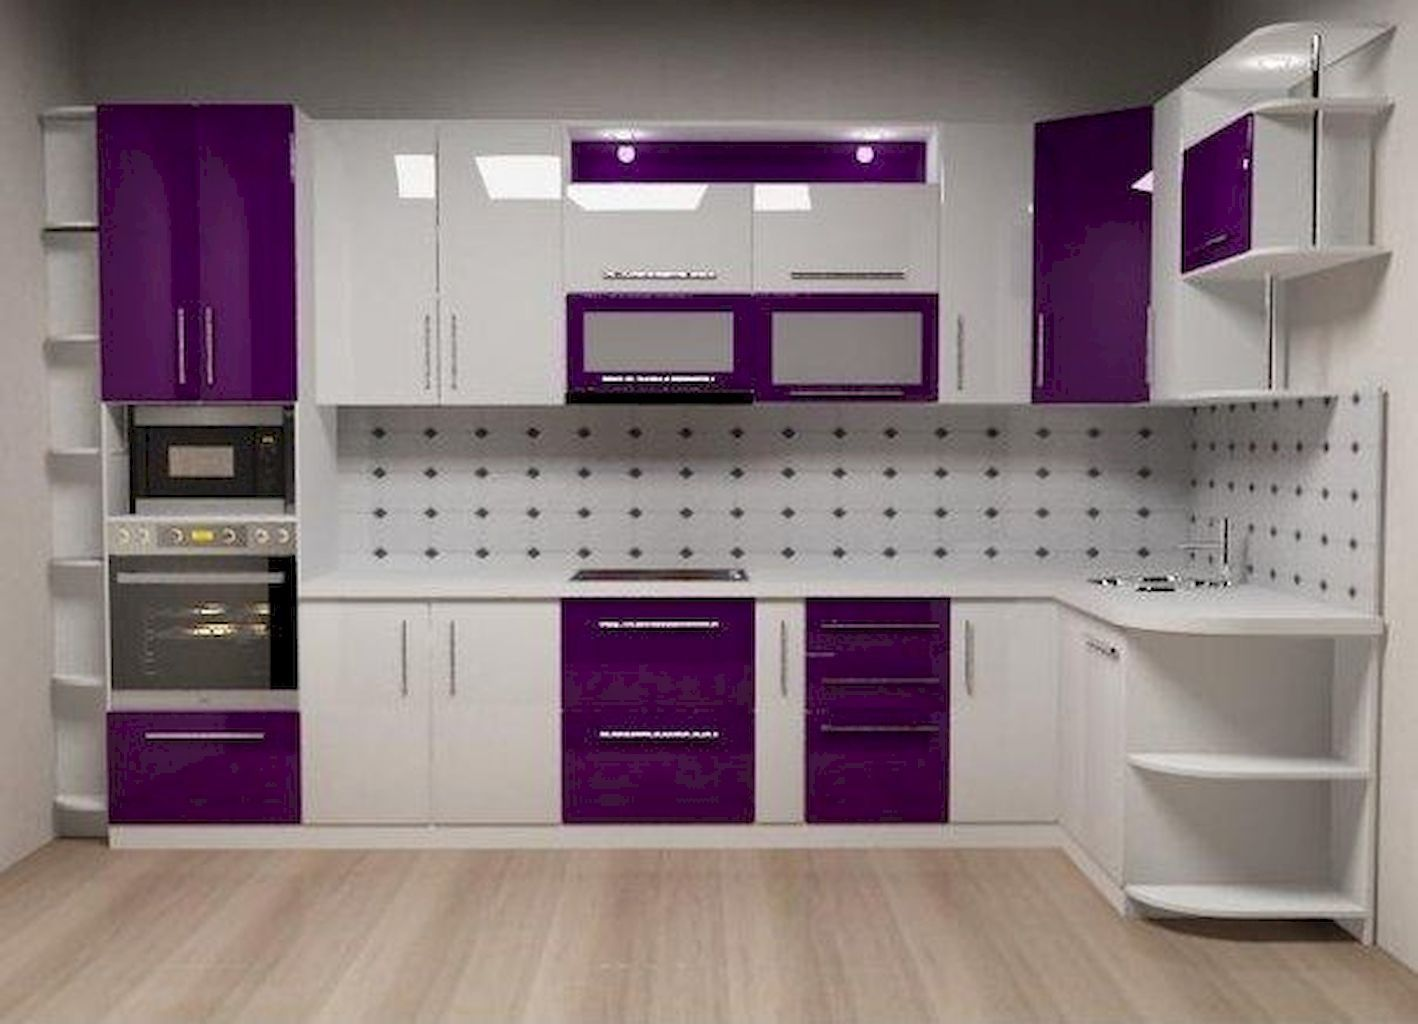 Cool Fabulous Modern Kitchen Sets on Simplicity, Efficiency and